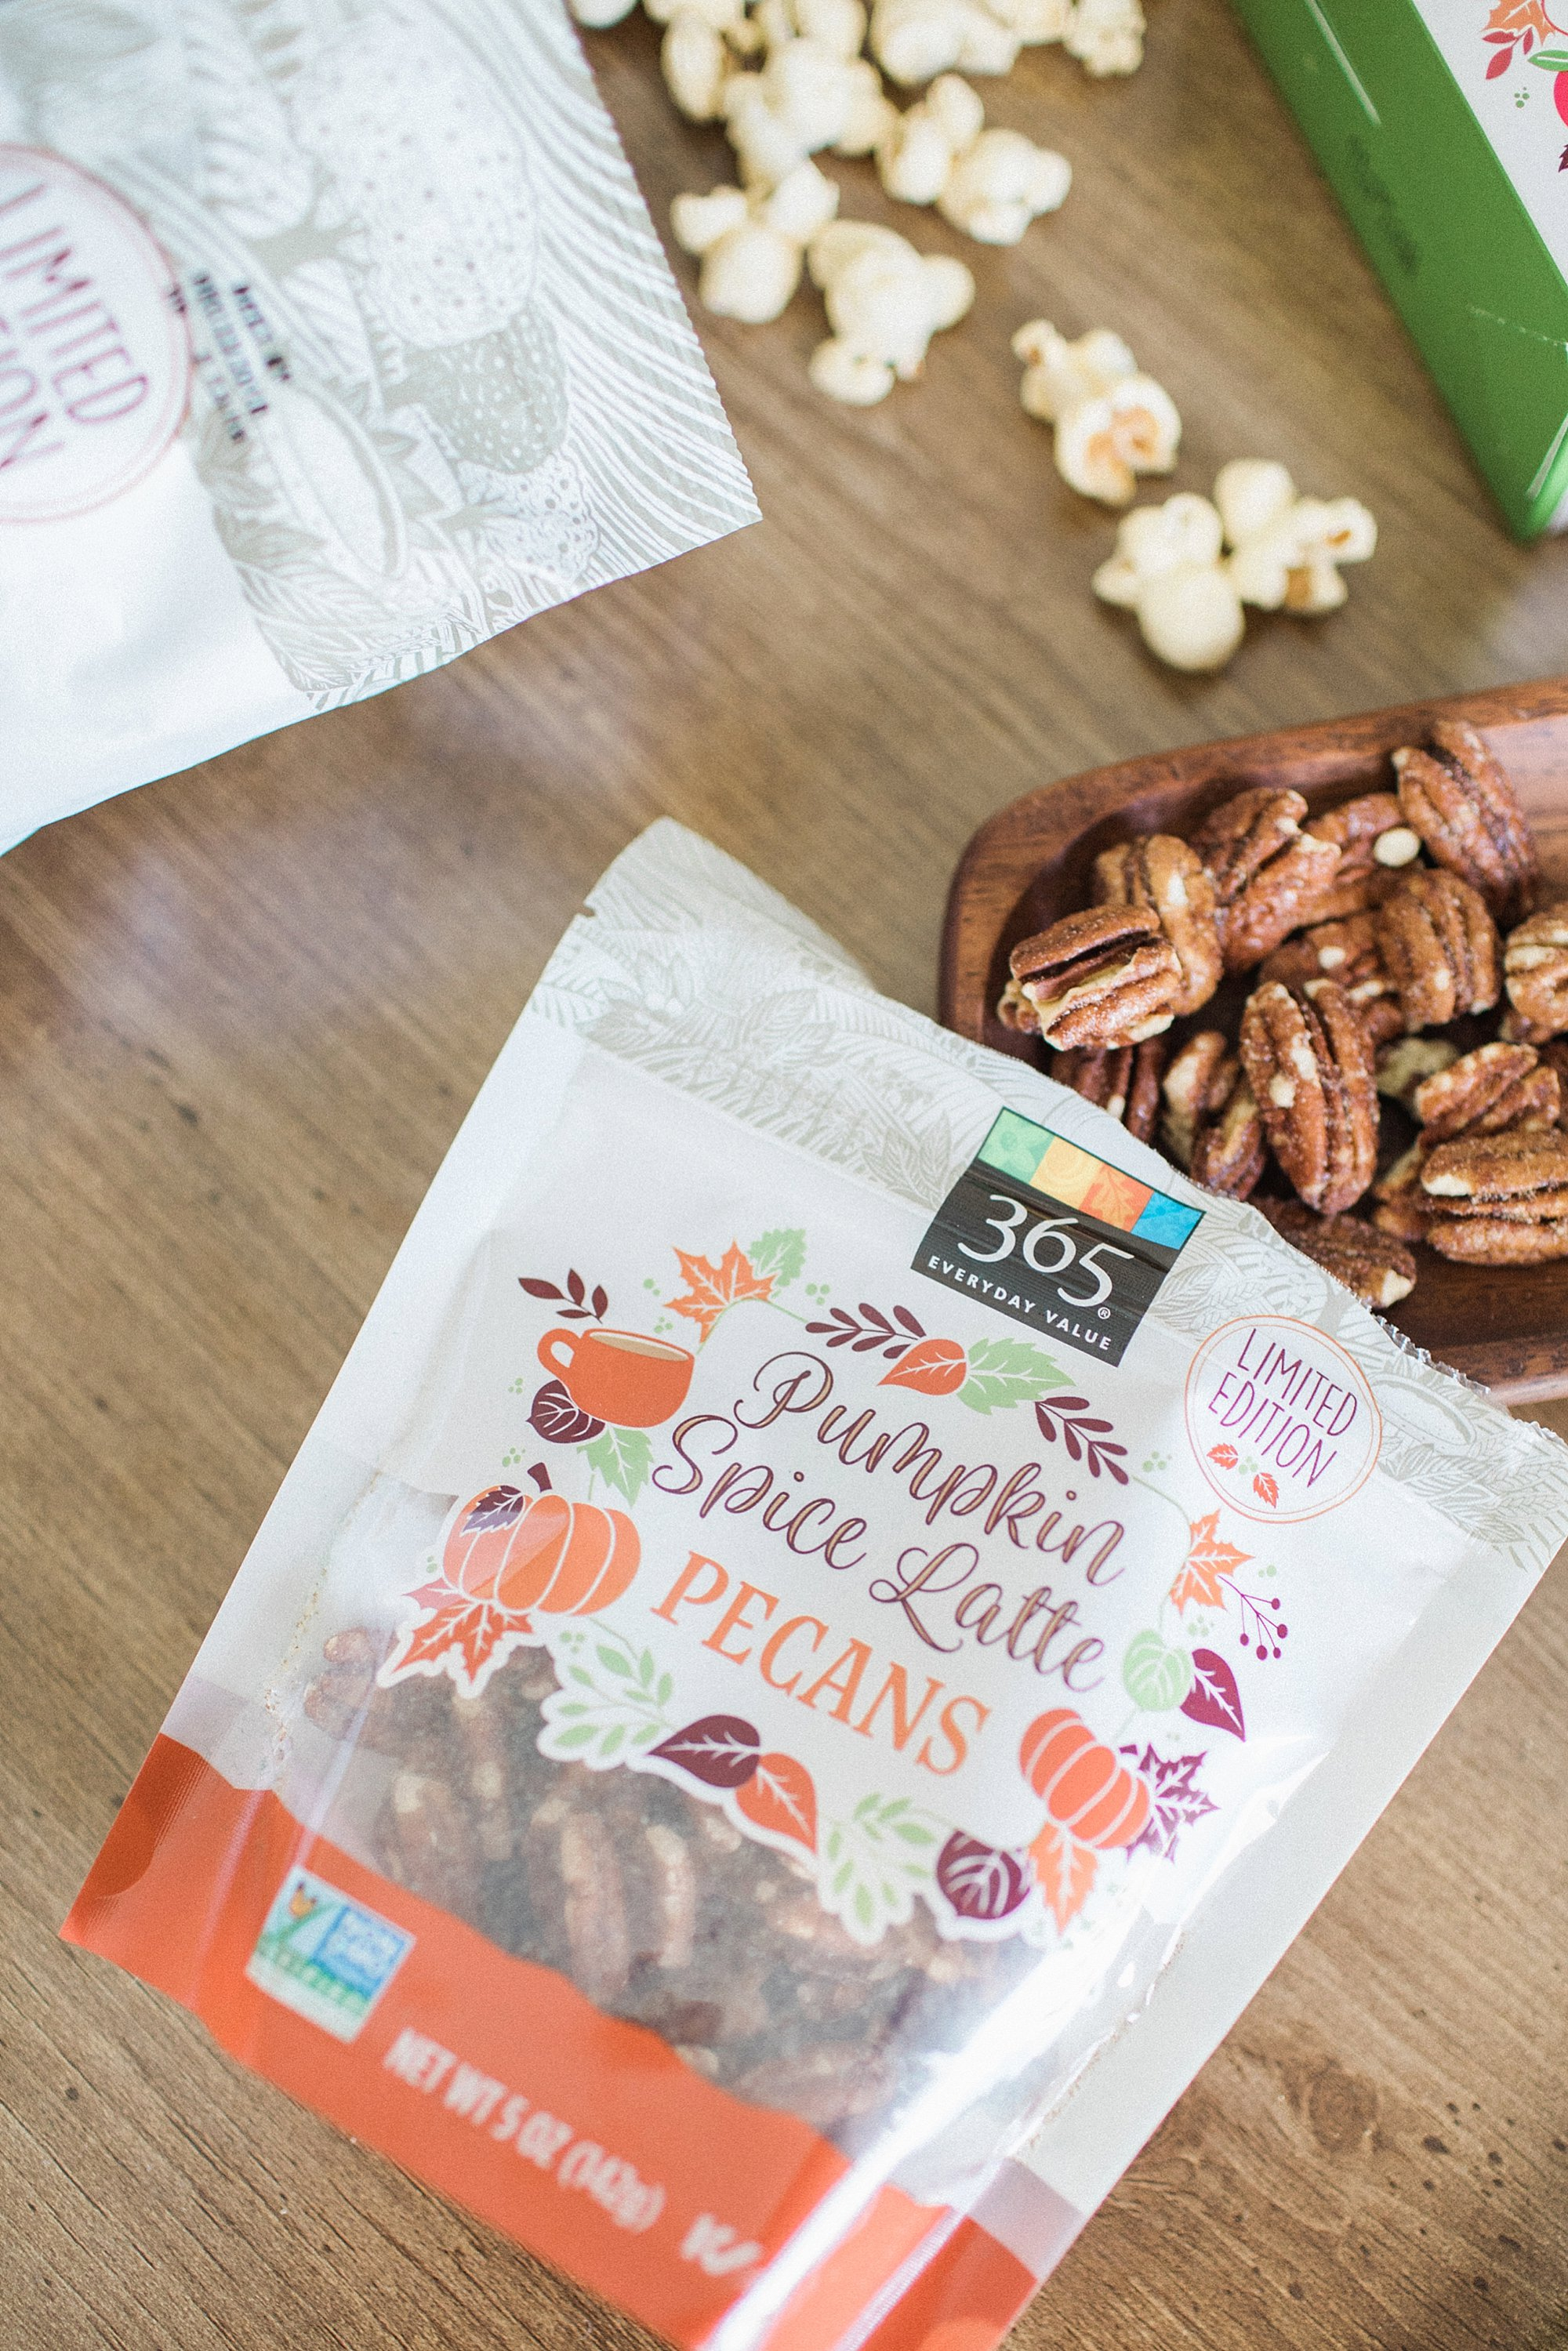 Pumpkin Spice Latte Pecans from Whole Foods